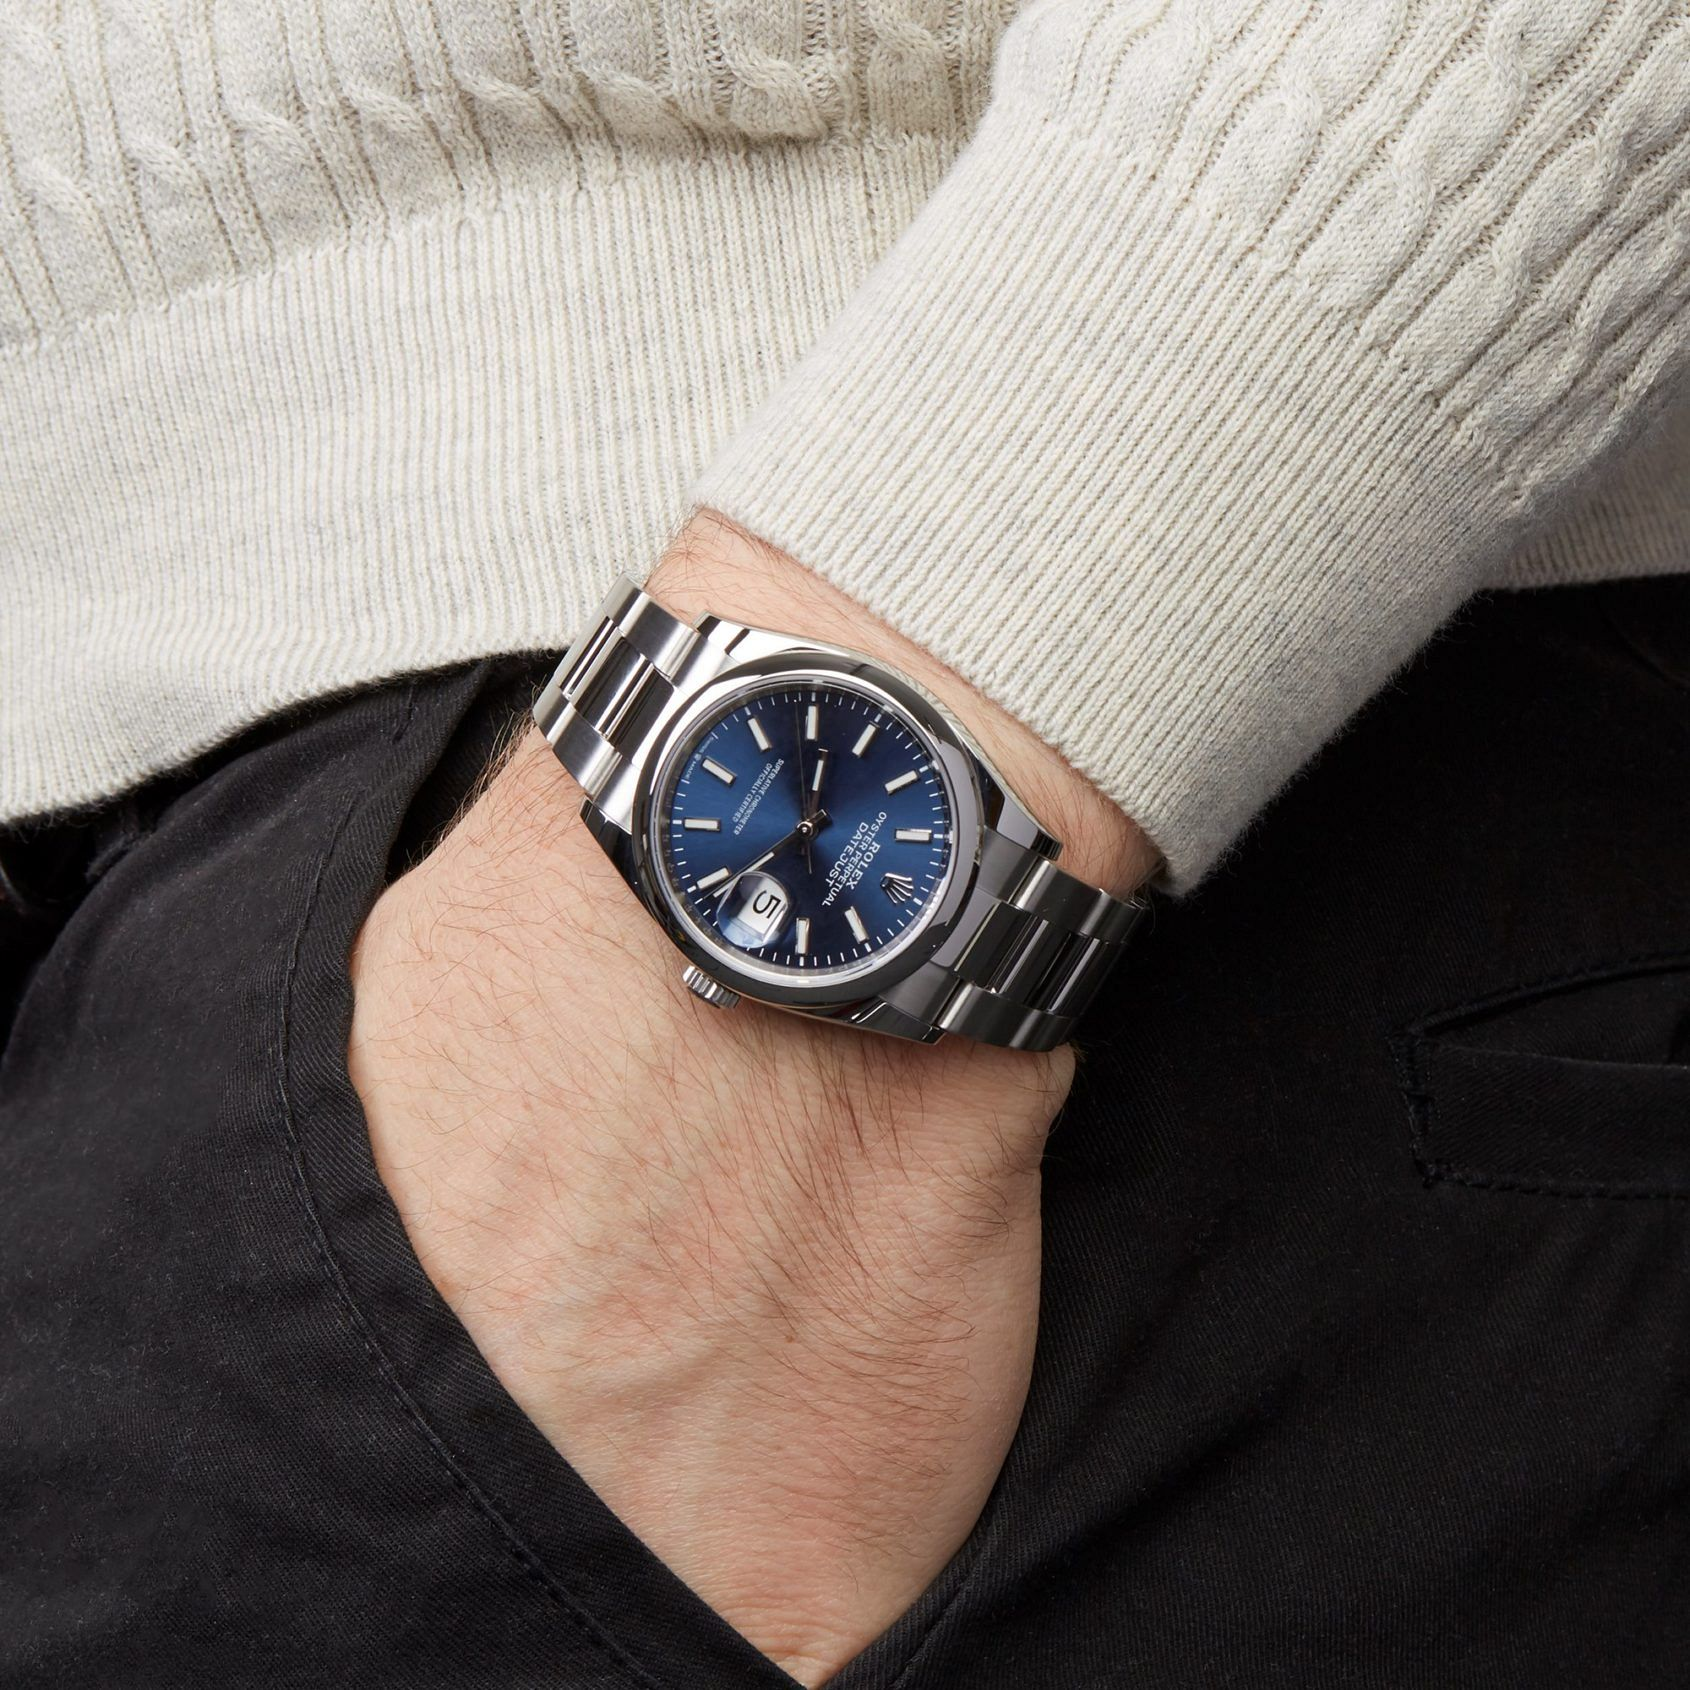 5 Rolex models just over and just under RRP that you can pick up now on Bob's Watches, including a surprising Daytona…